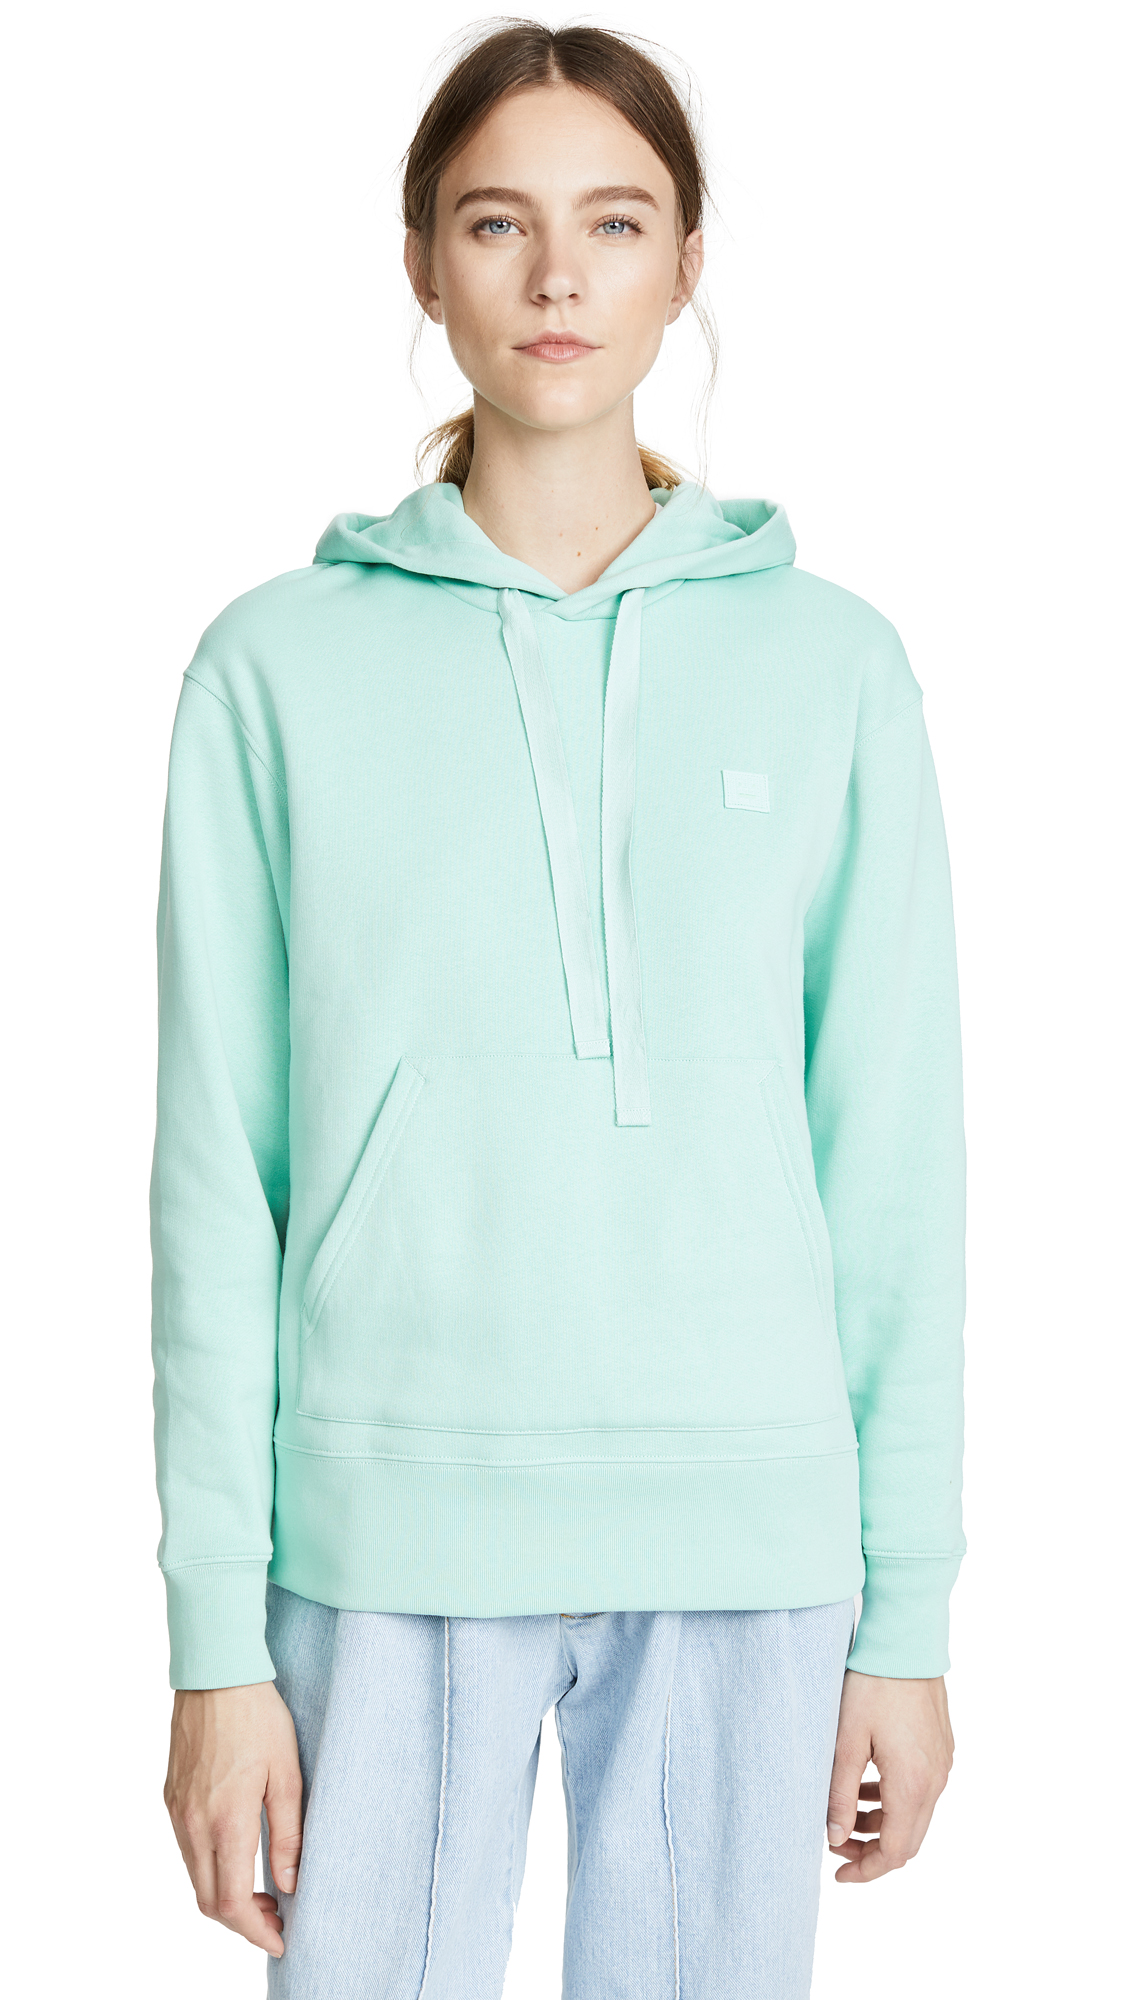 Acne Studios Ferris Face Hoodie In Mint Green